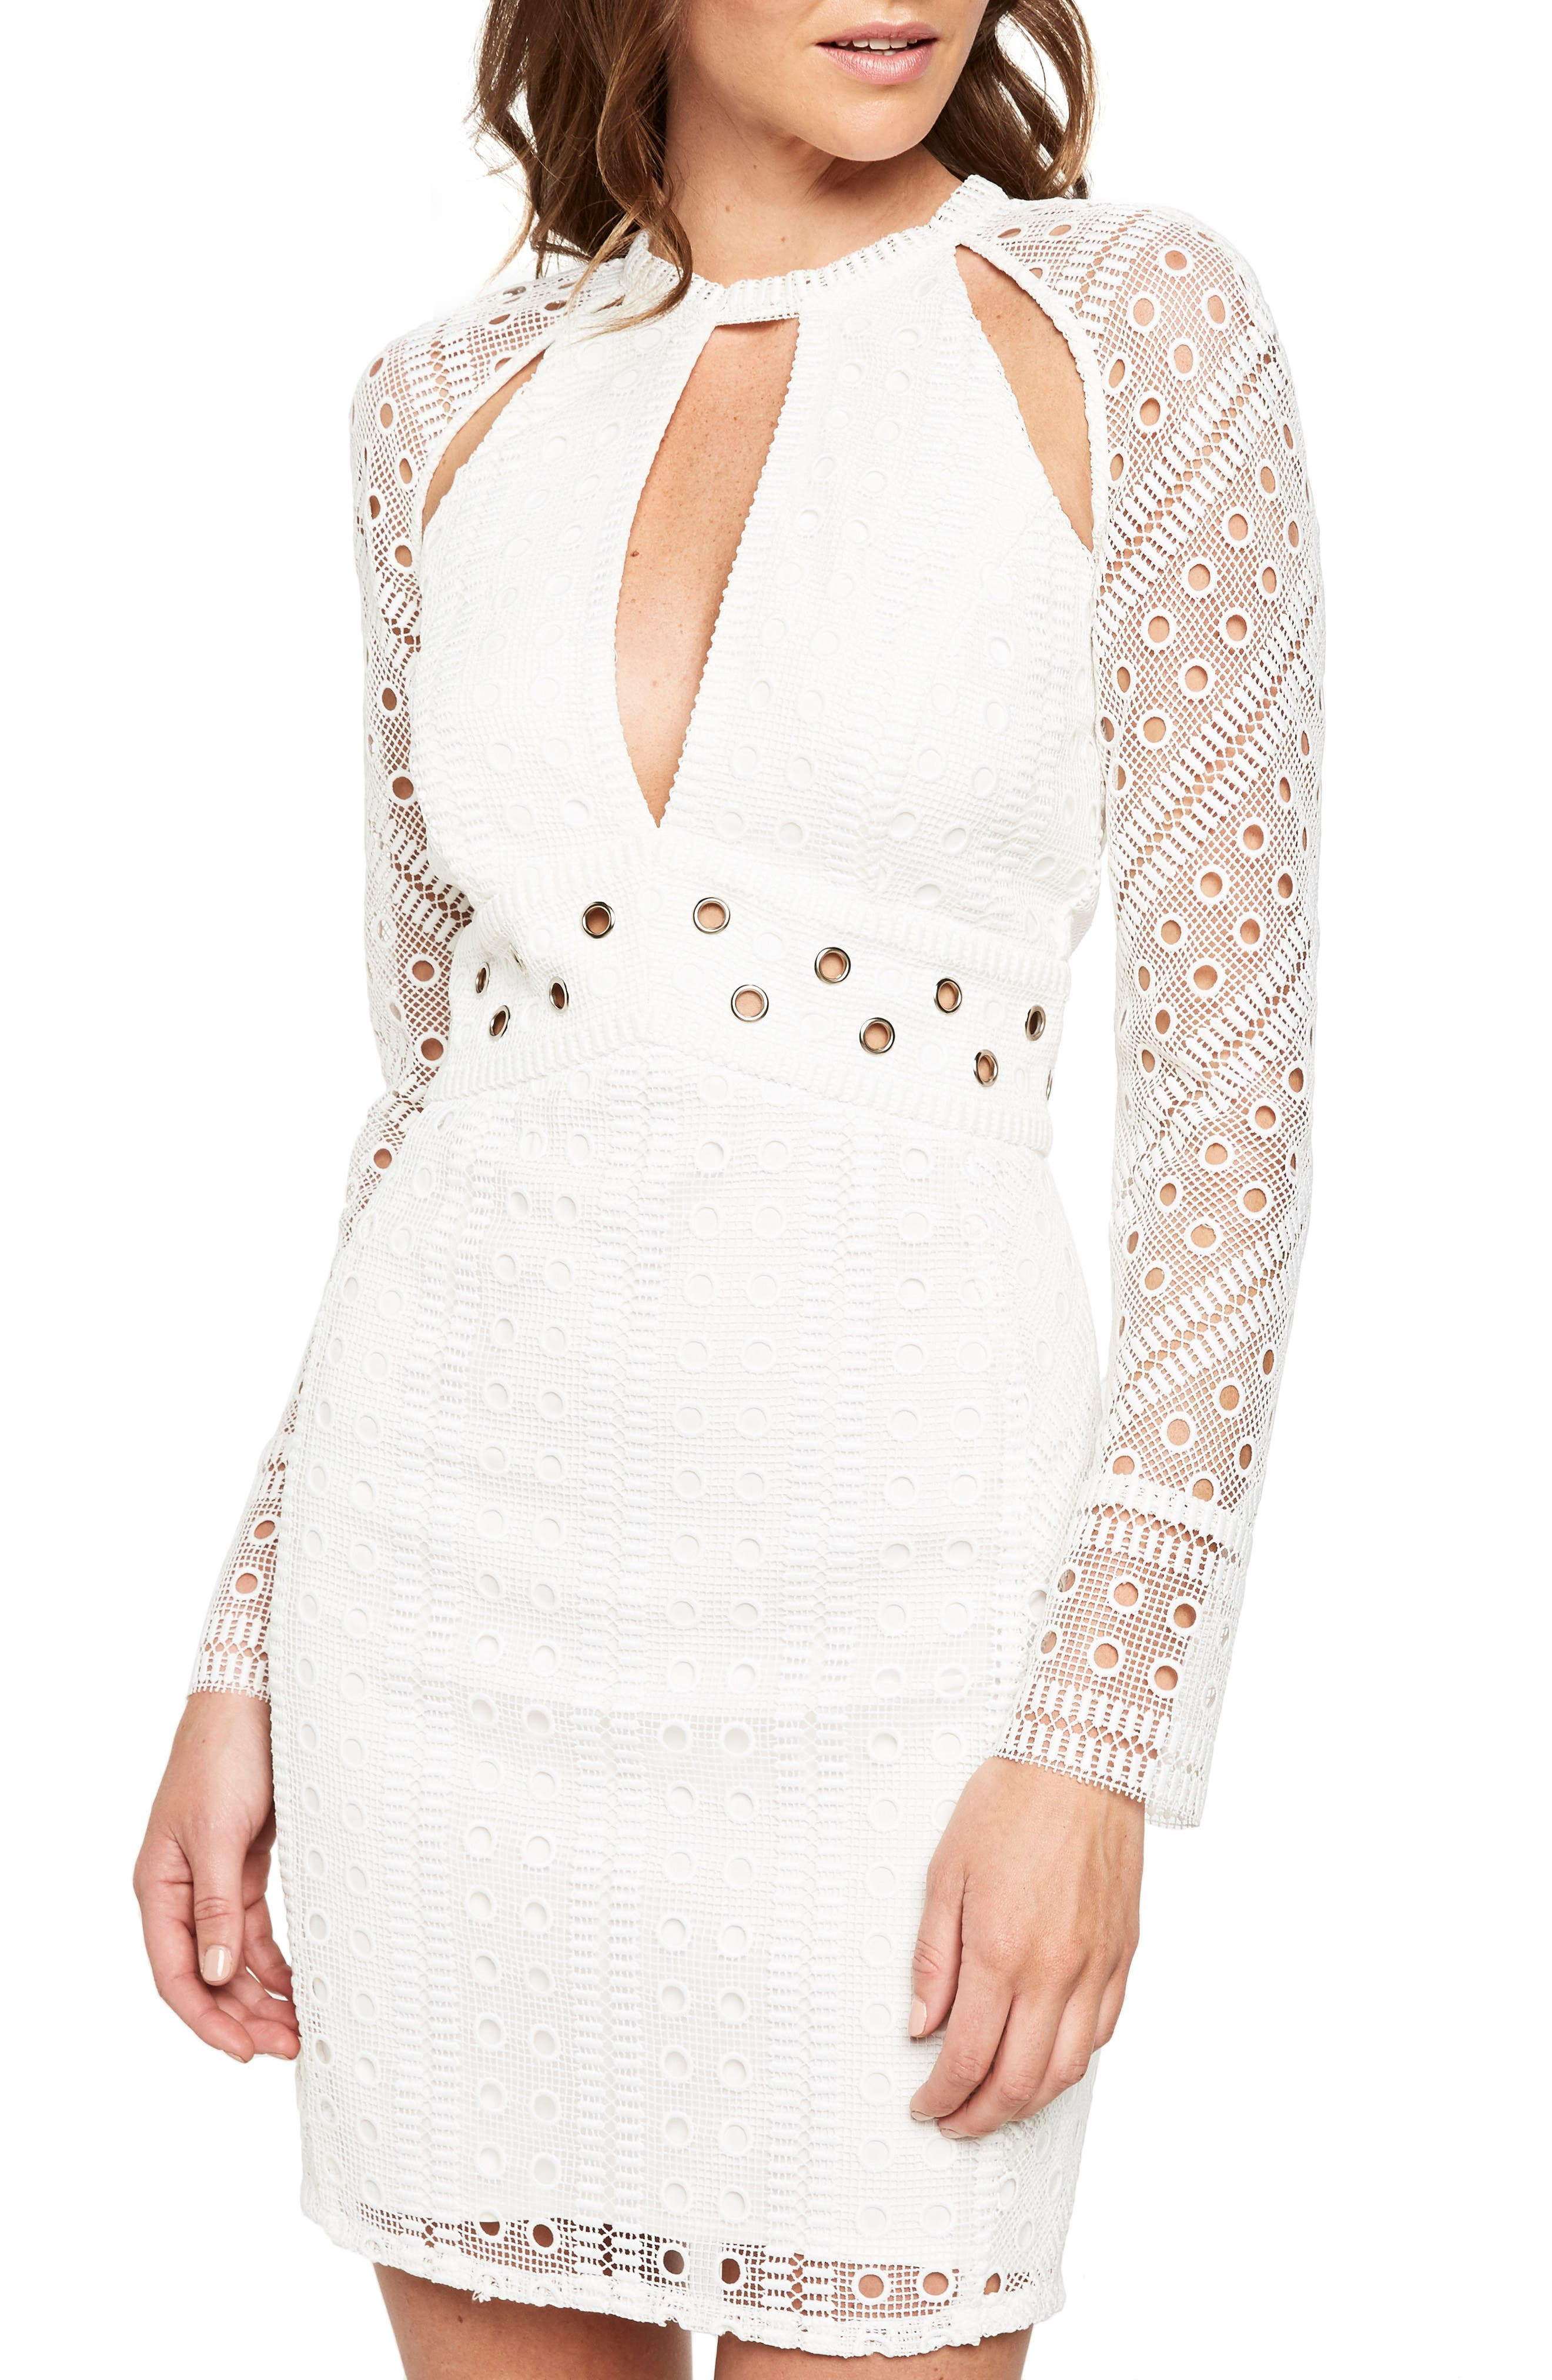 Grommet Detail Broderie Anglaise Dress,                         Main,                         color, Ivory